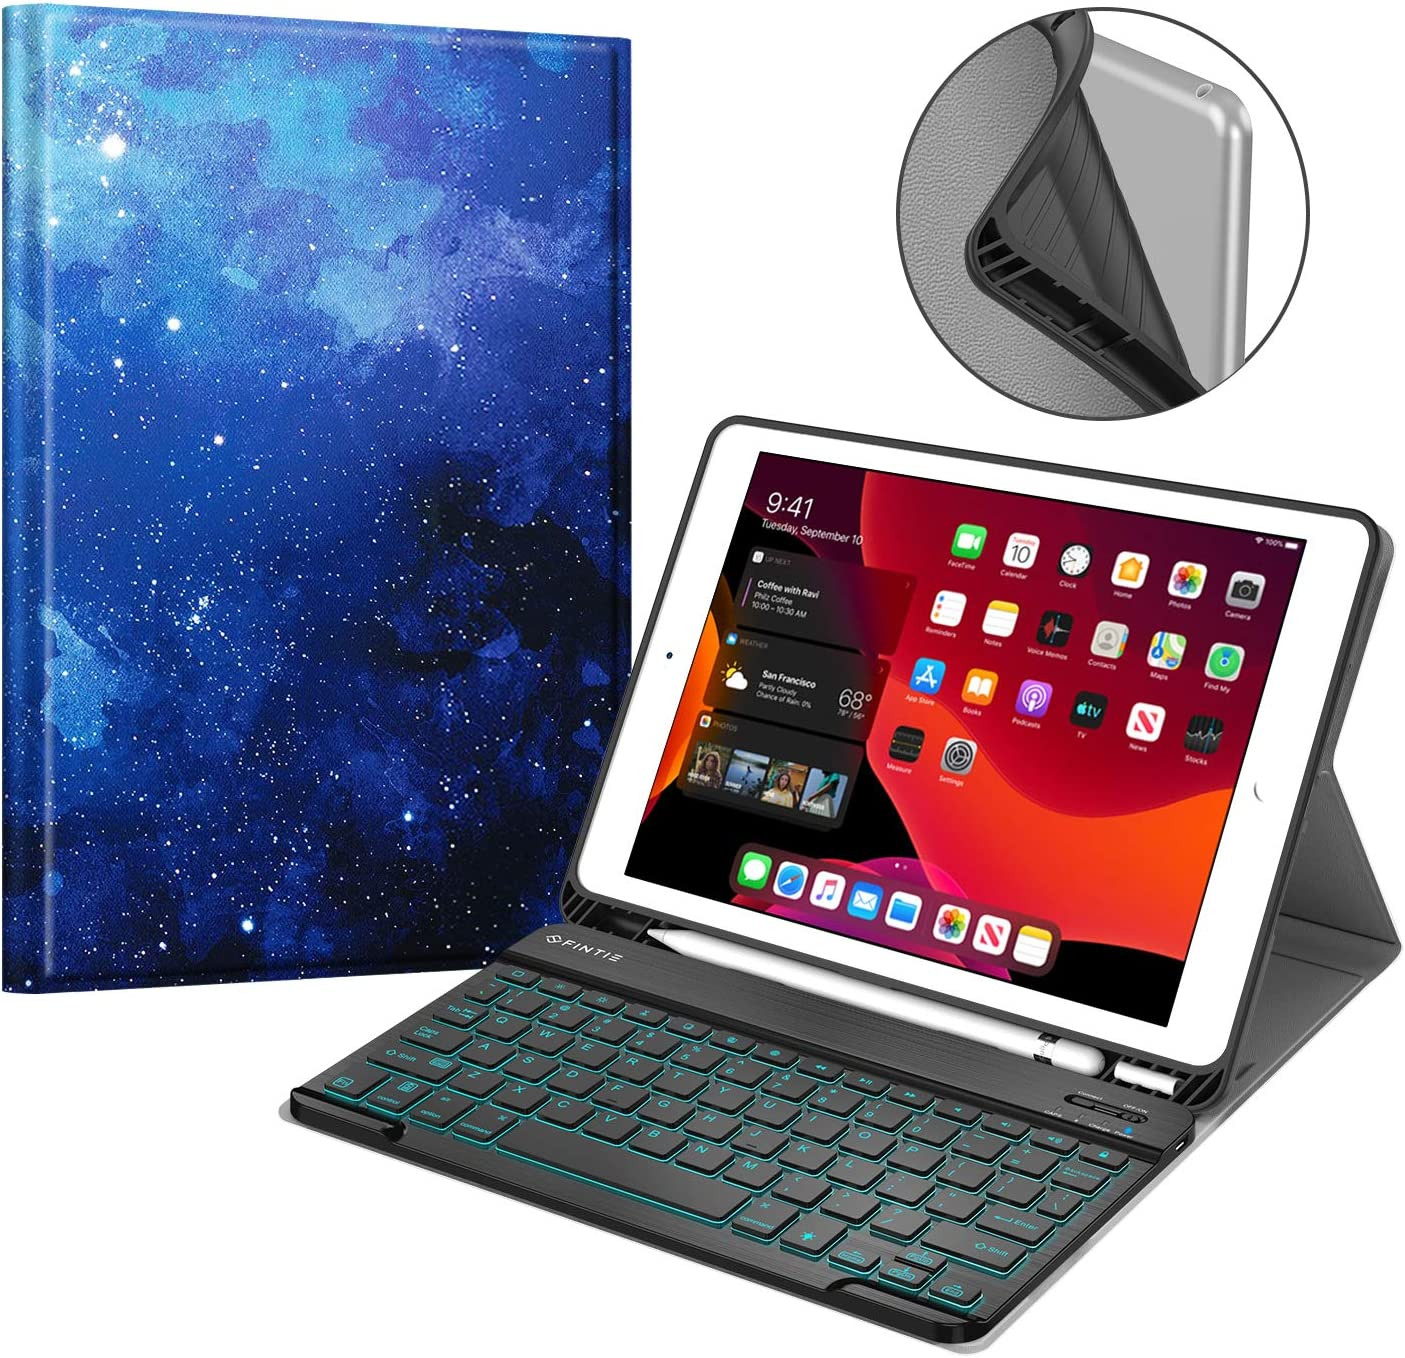 Fintie Keyboard Case for New iPad 7th Generation 10.2 Inch 2019, Soft TPU Back Cover with Pencil Holder, Magnetically Detachable Wireless Bluetooth Keyboard, 7 Color Backlight, Starry Sky